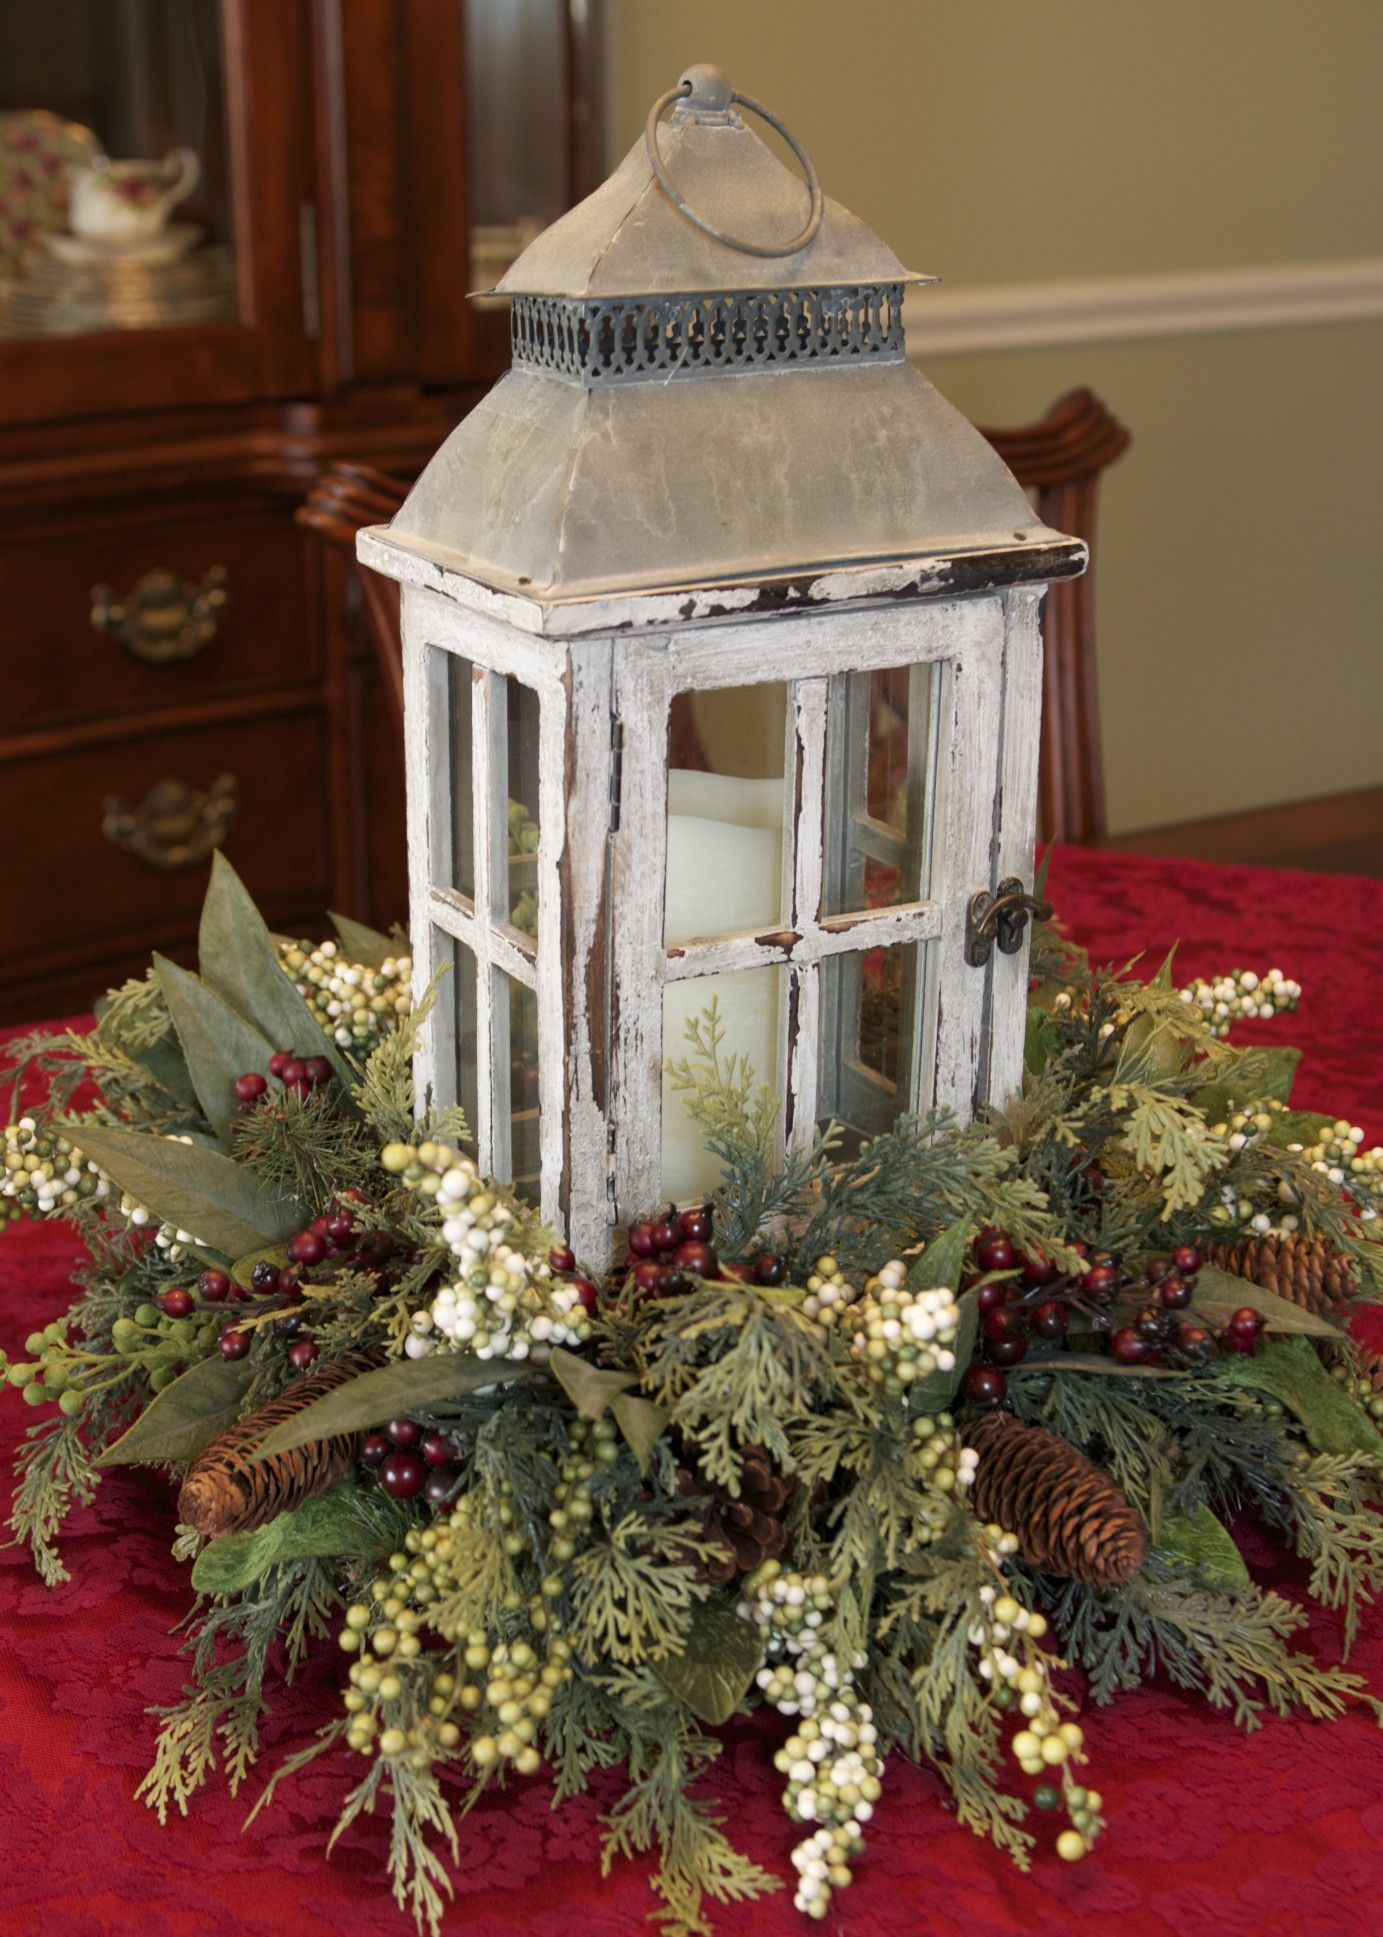 winter lantern centerpiece by linda rosia xmas decorations decoration noel lantern christmas decor